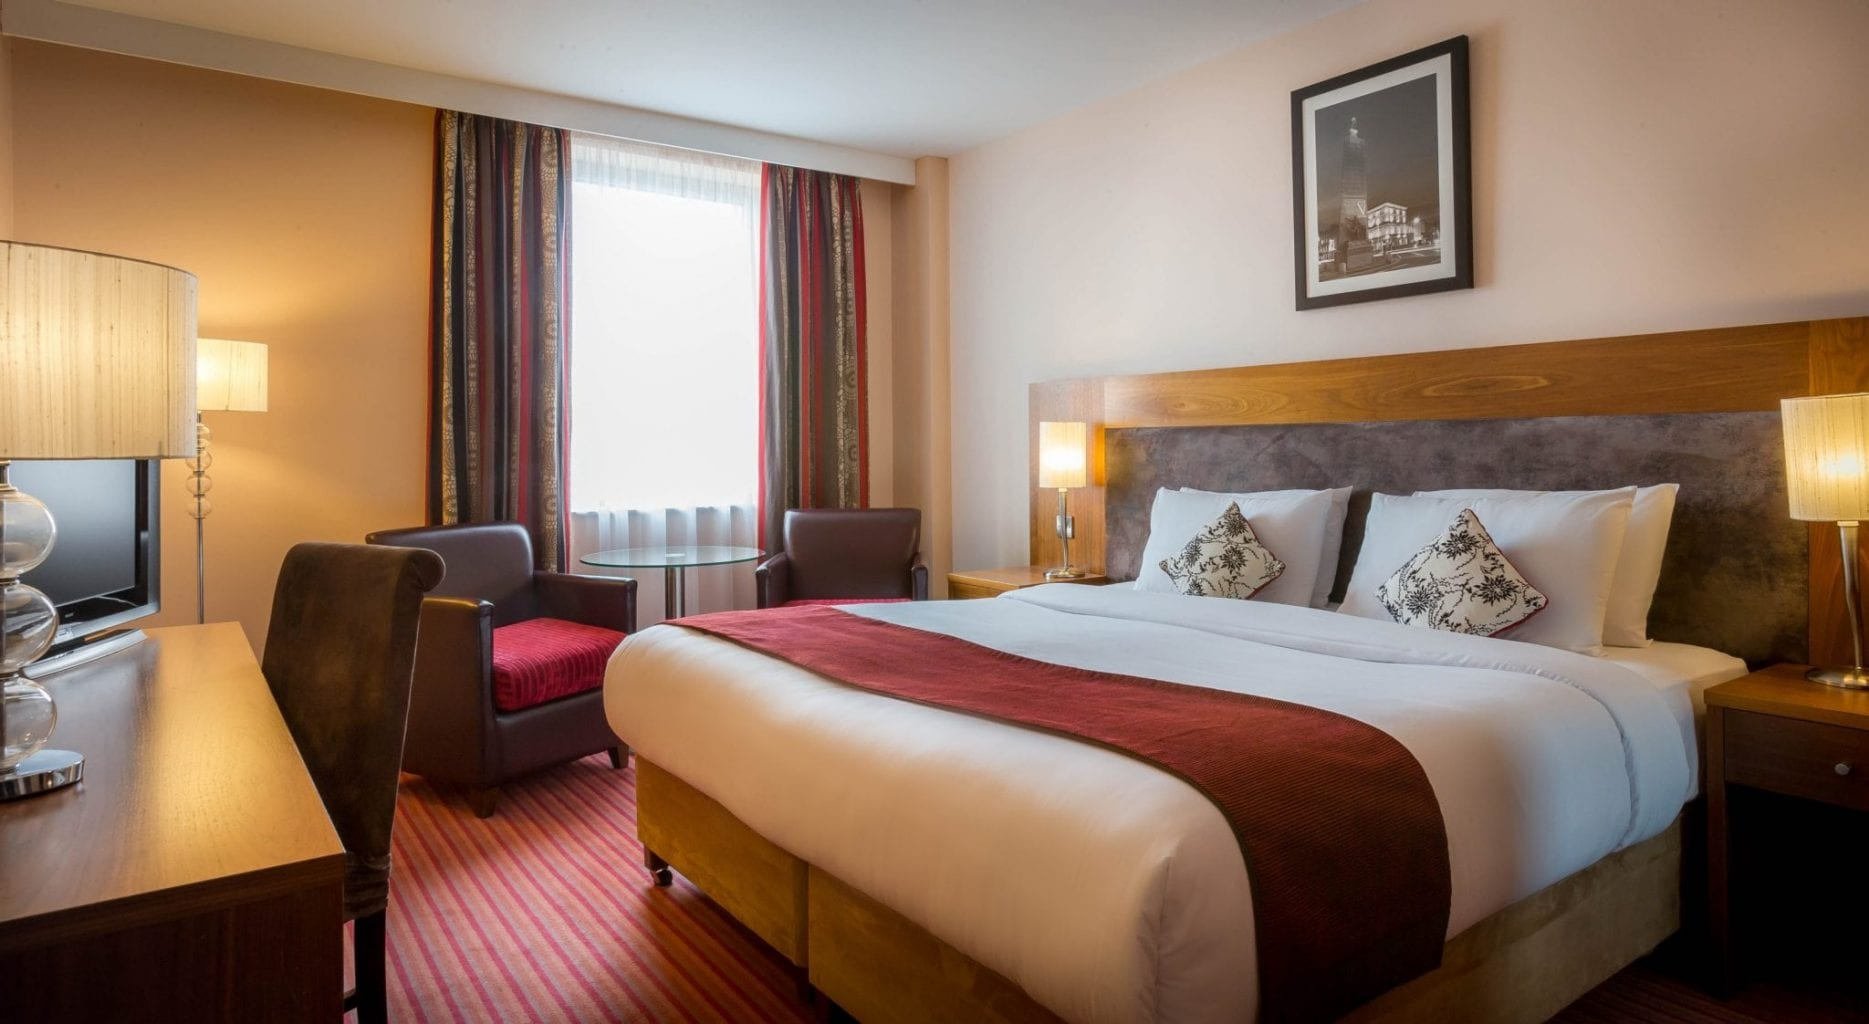 Maldron-Hotel-Parnell-Square-Dublin-room-with-kingsize-bed